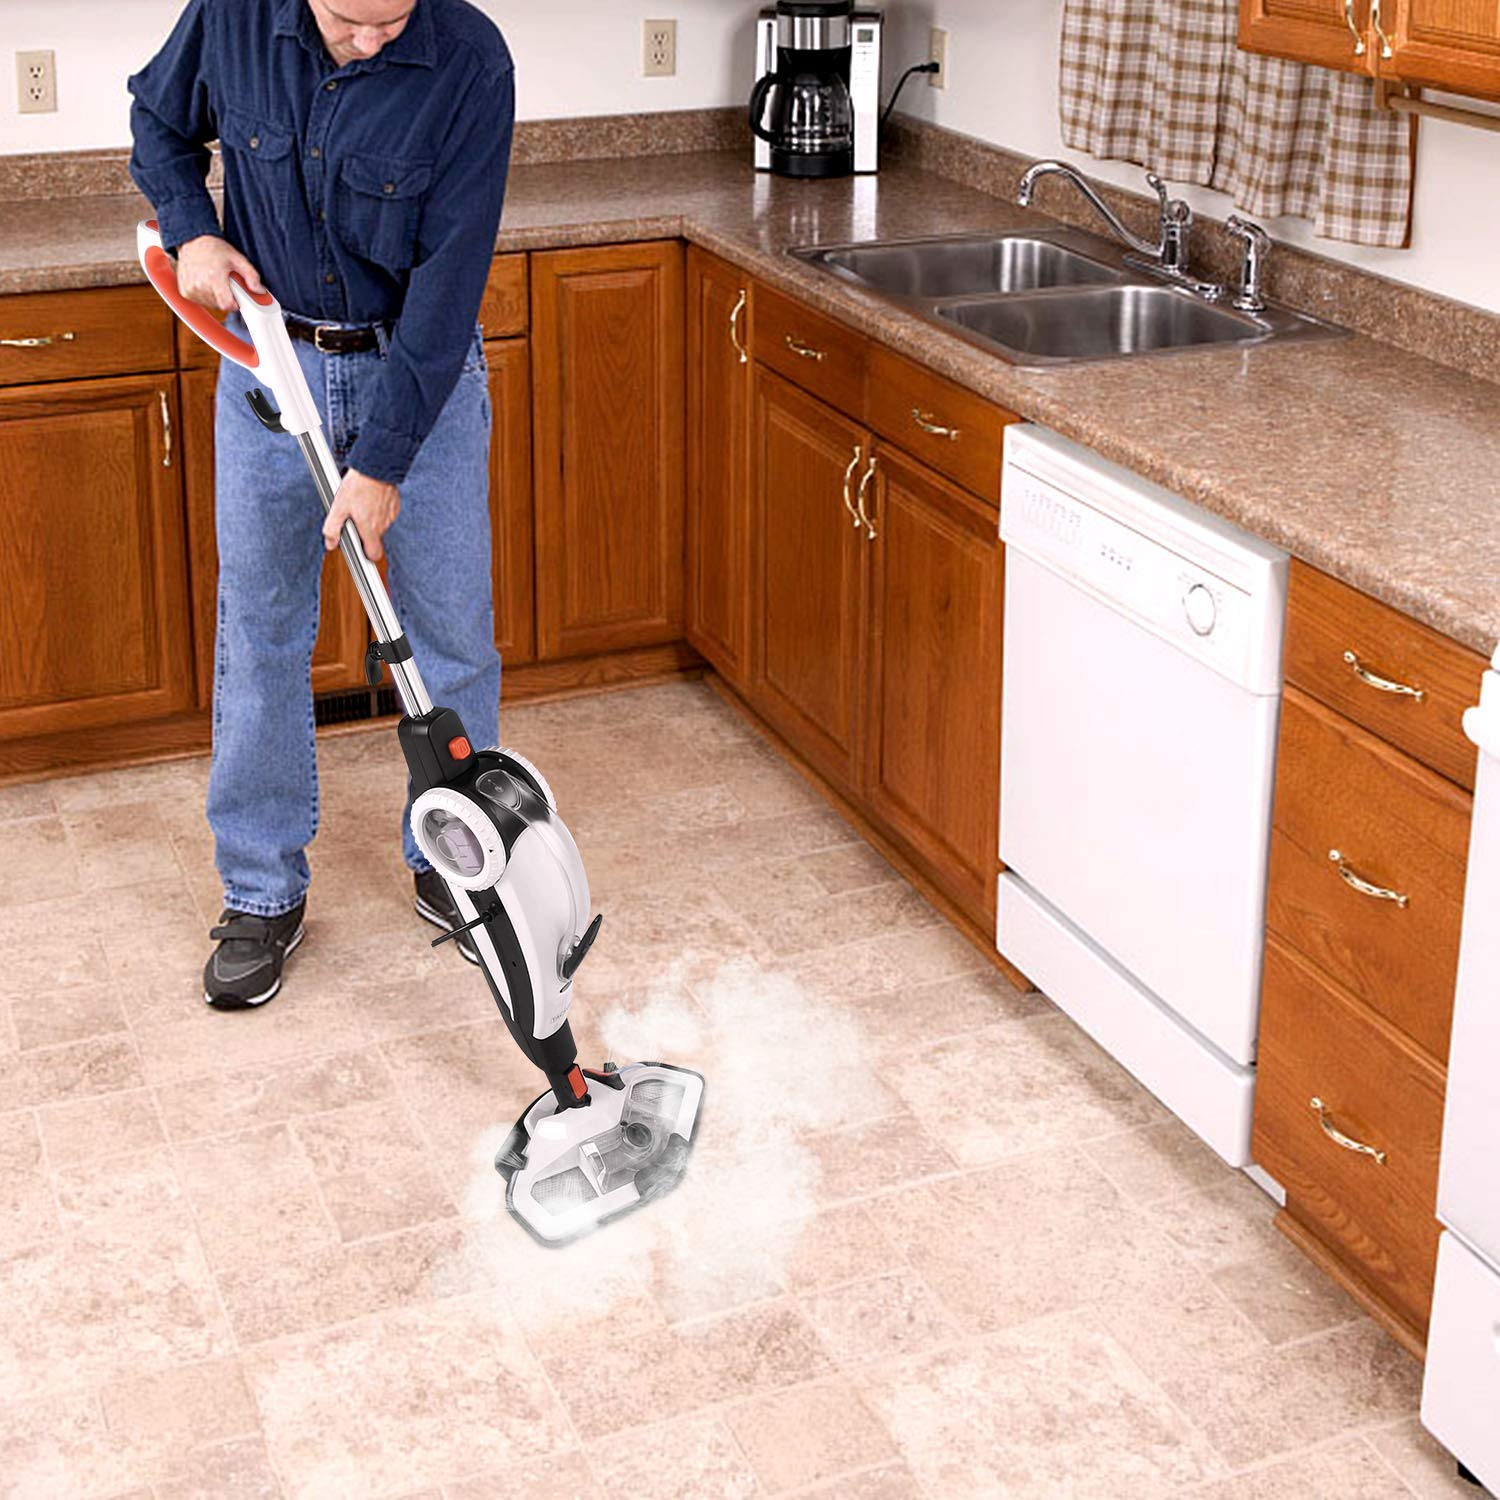 TACKLIFE Steam Mop, Steam Cleaner Multifunction Floor Steamer and Hand-held Steam Floor Mop 2 in 1, 1400W Portable Electric Scrubber Heating in 5s, with 11 Accessories by TACKLIFE (Image #7)